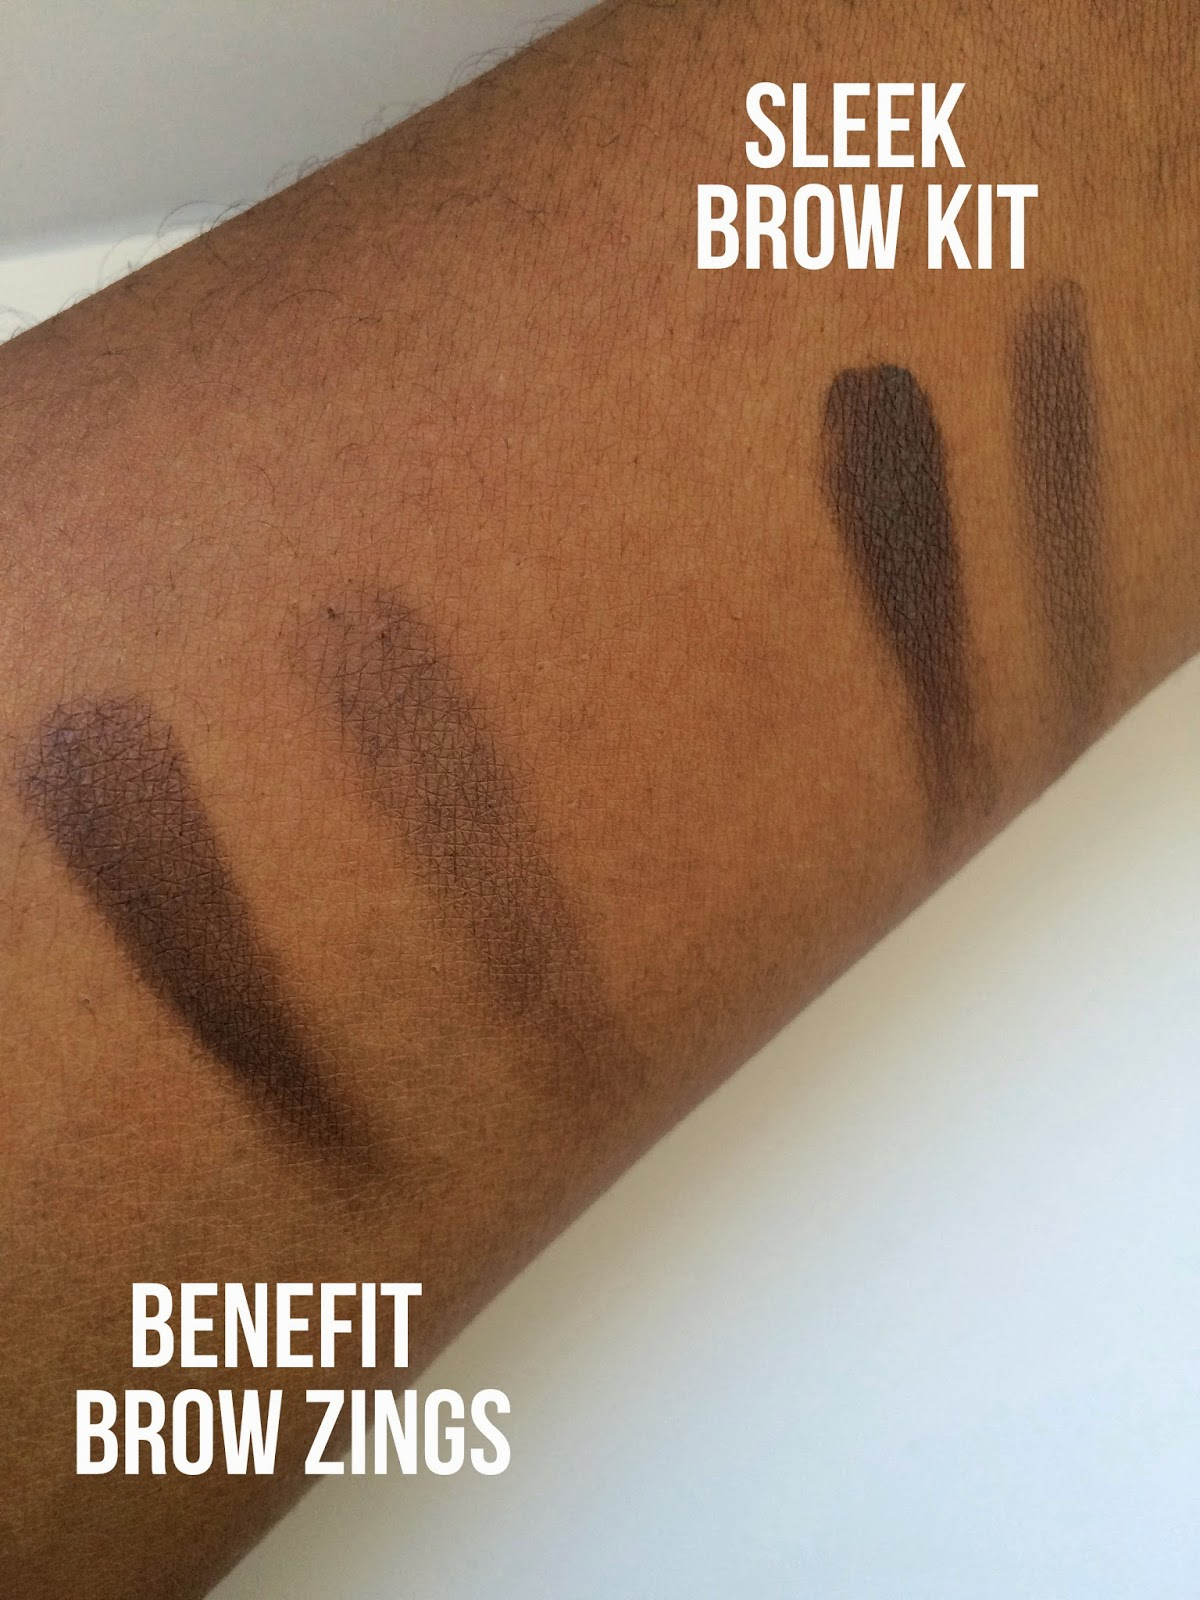 Brow Zings Eyebrow Shaping Kit by Benefit #7